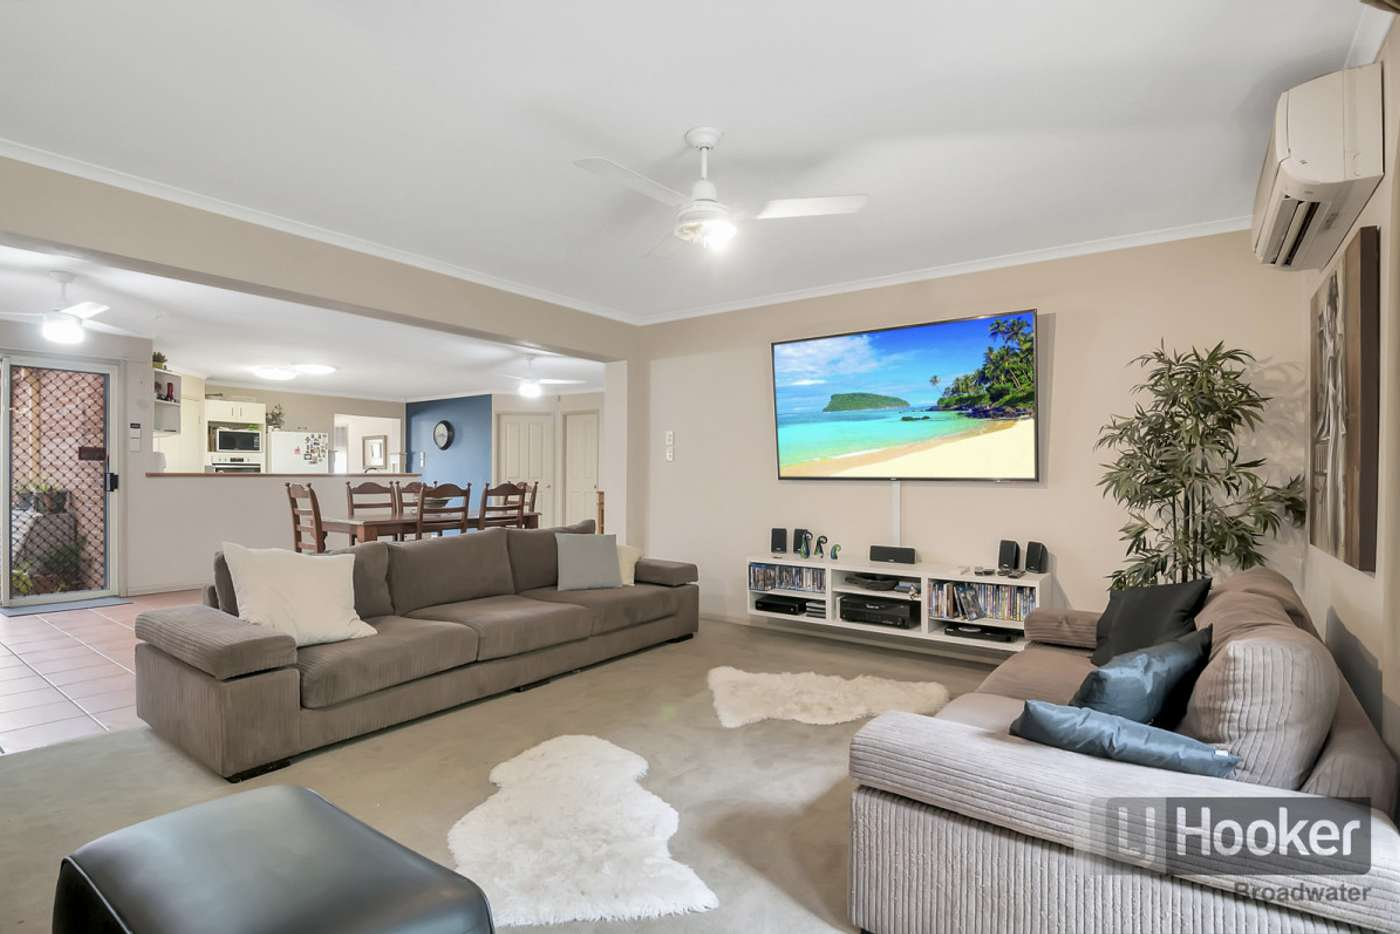 Fifth view of Homely house listing, 21 Ormeau Ridge Road, Ormeau Hills QLD 4208